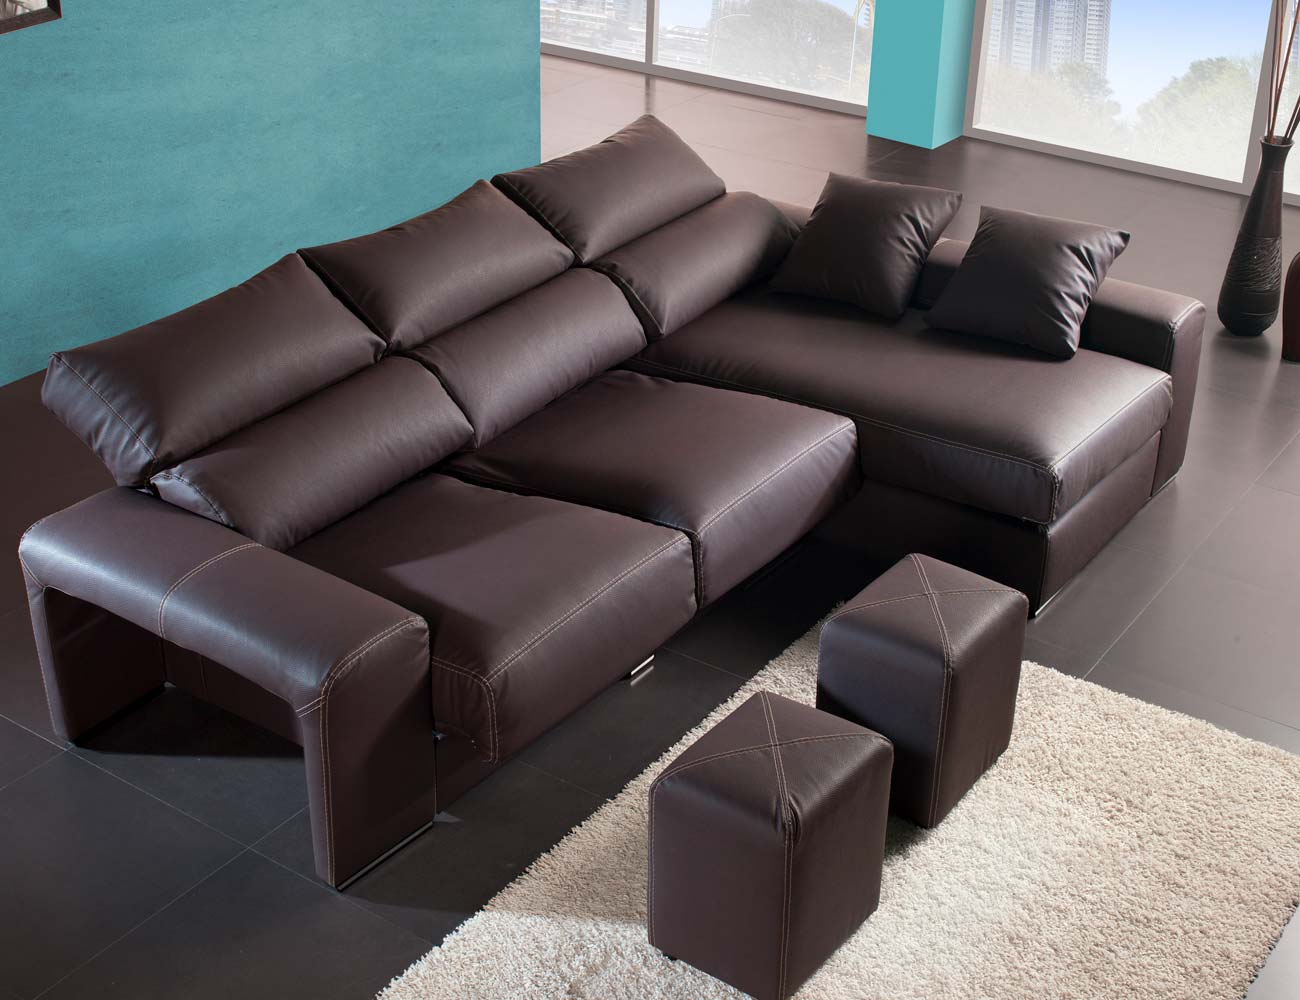 Sofa chaiselongue moderno polipiel chocolate poufs taburetes8